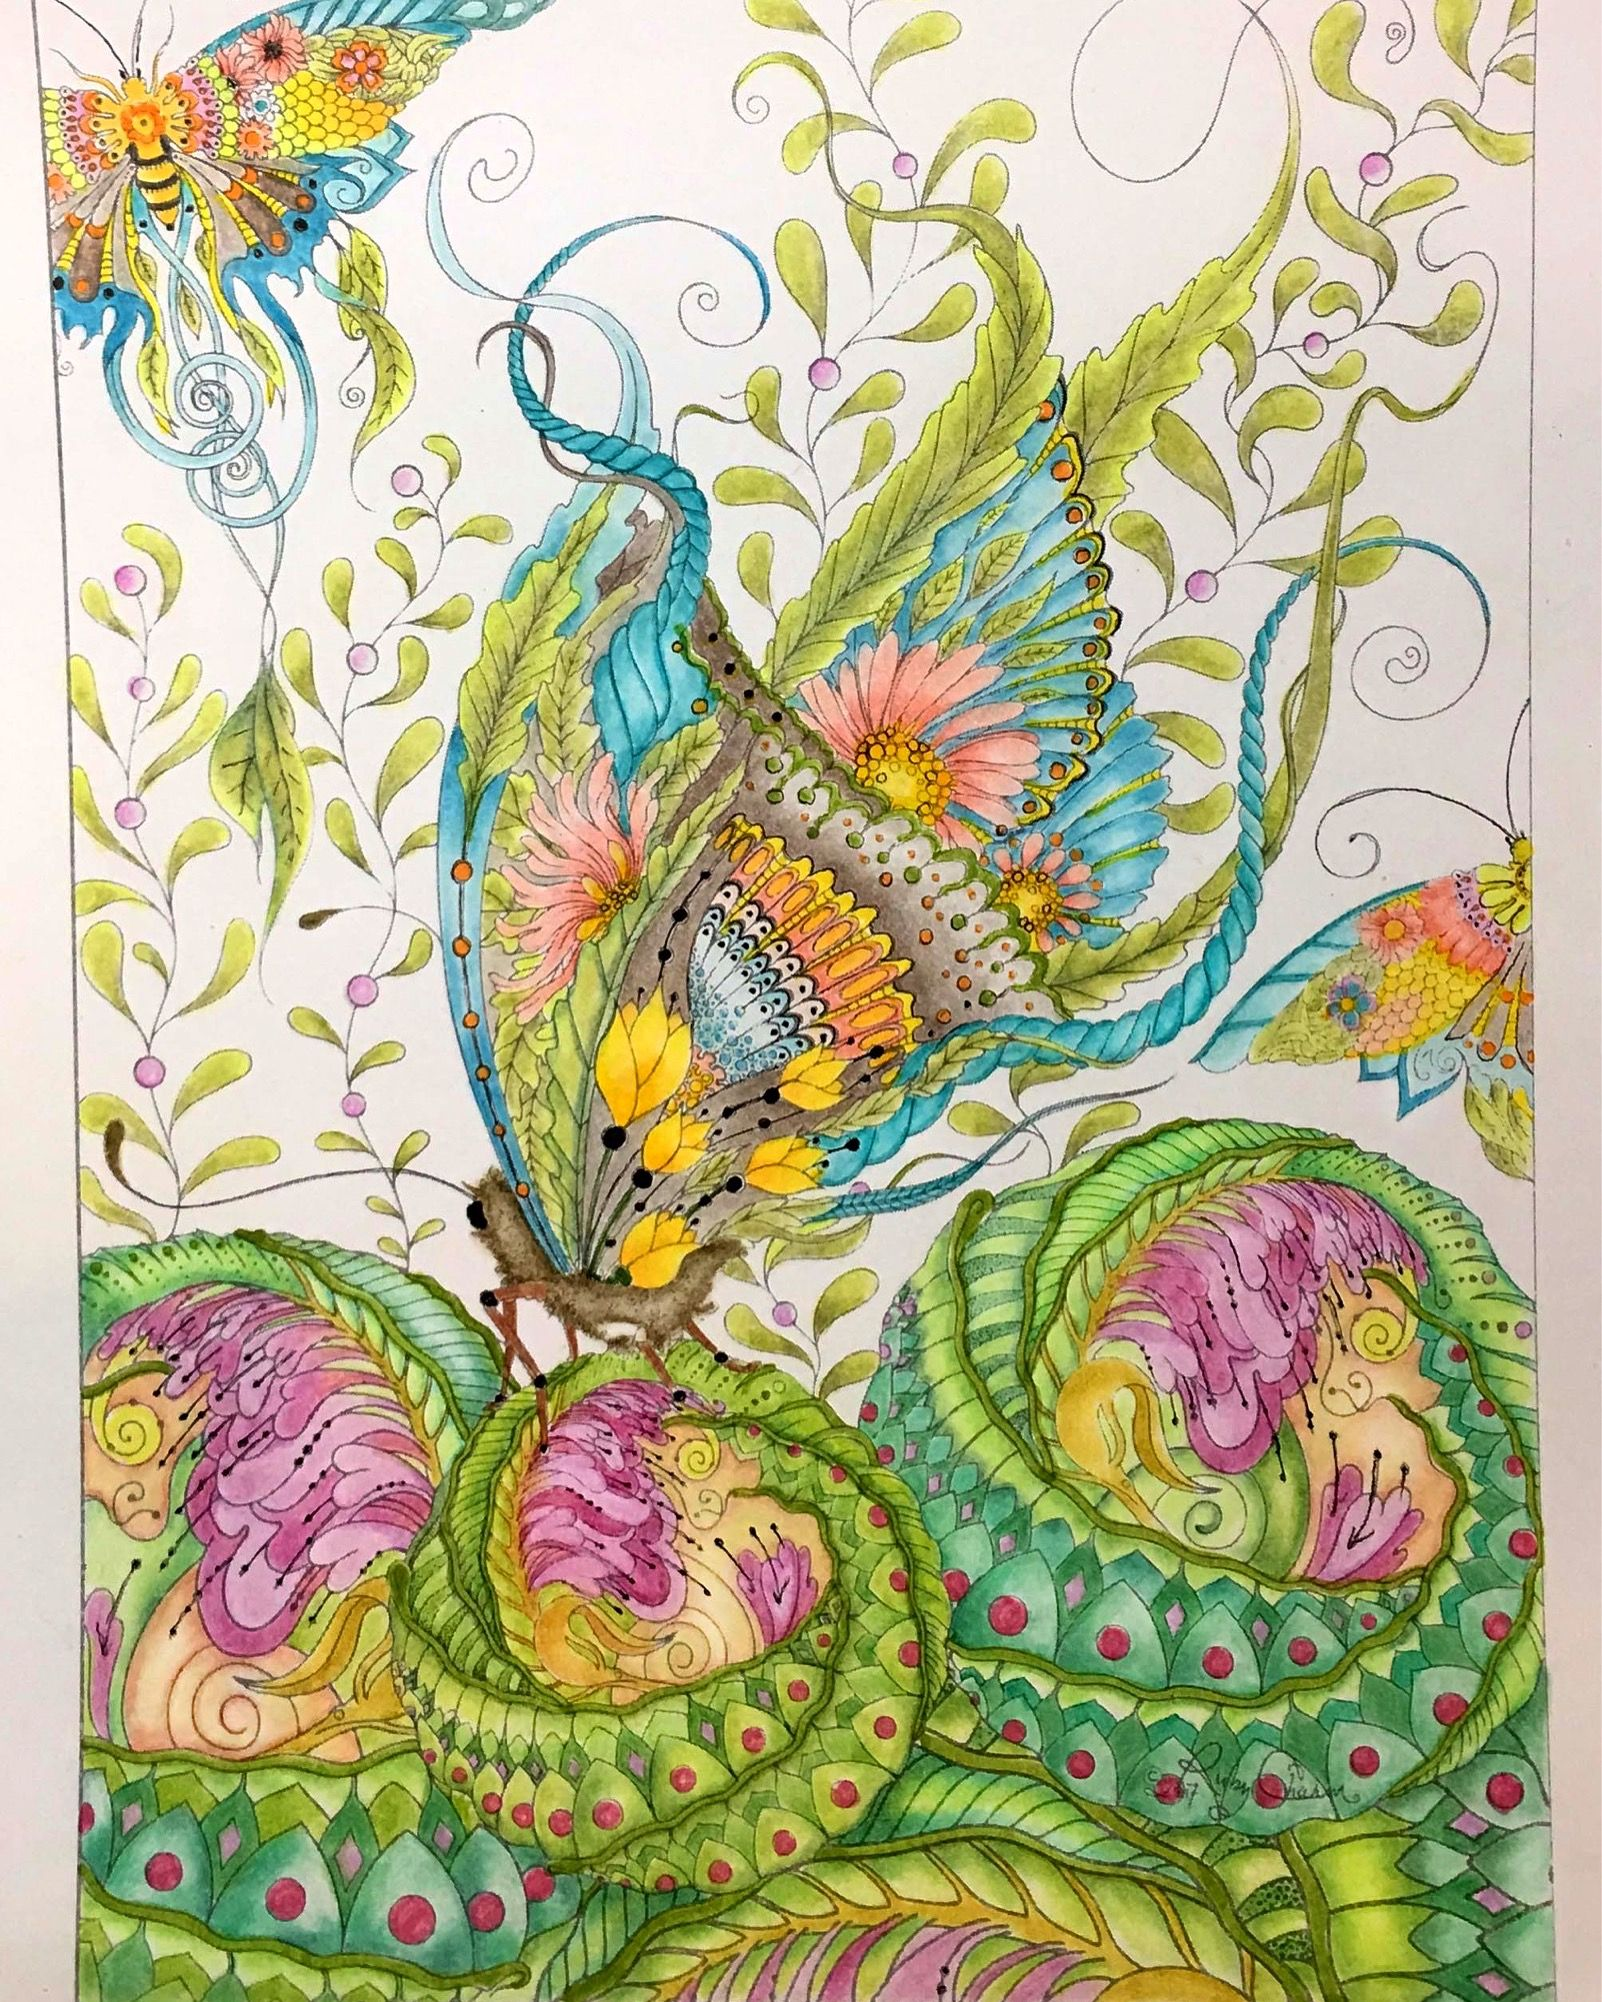 Pin by Penny Milner on Finished colouring pages | Pinterest | Artist ...